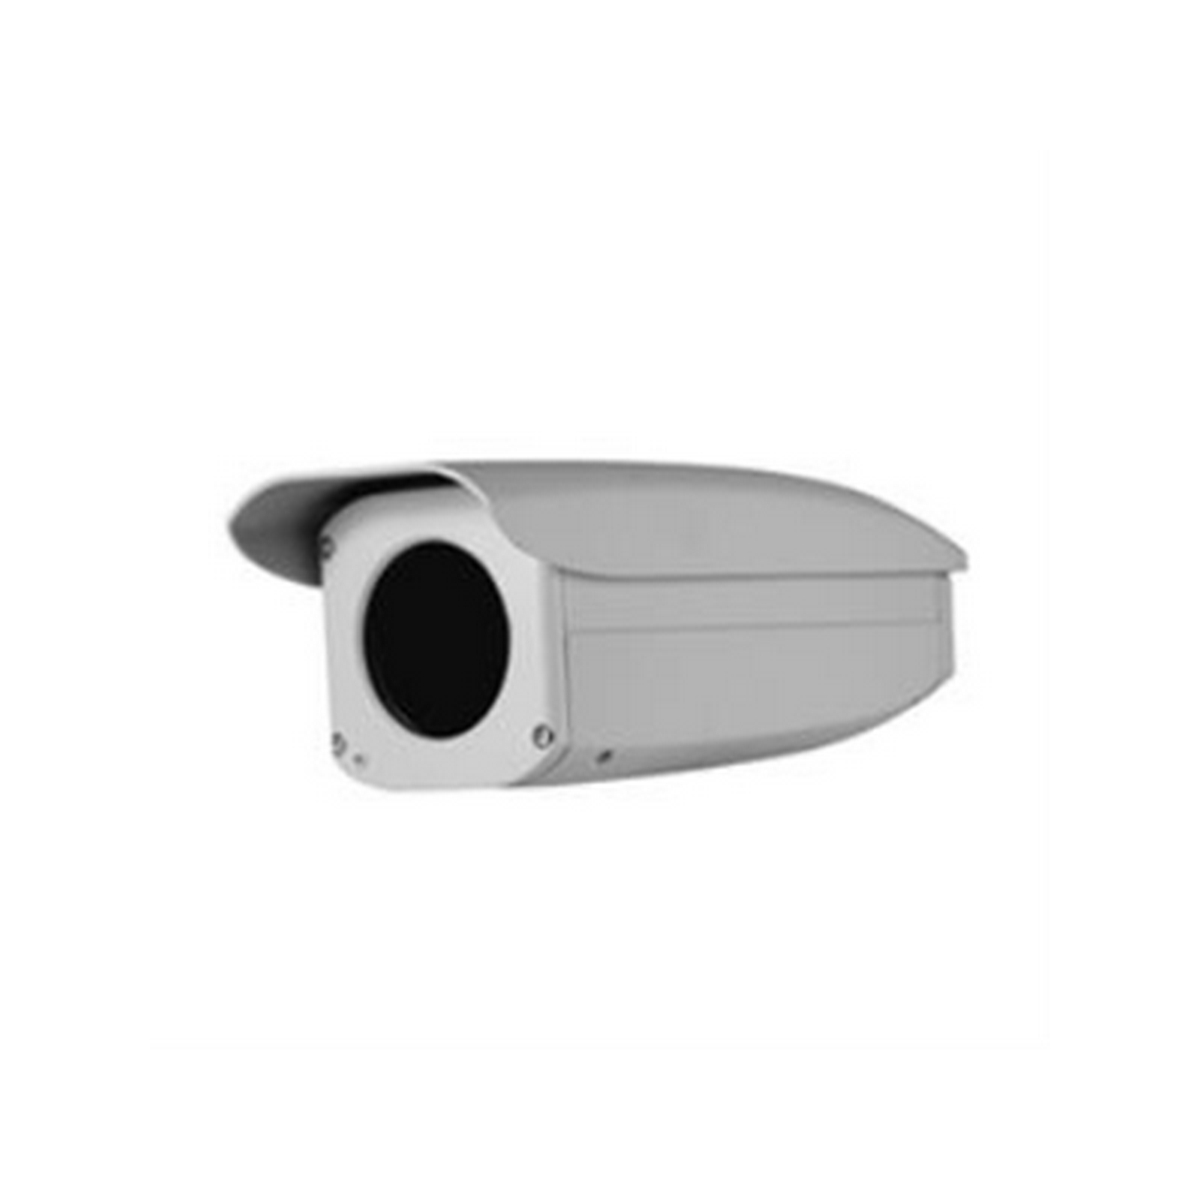 Pelco ESTI635-5W    Sarix Thermal Imaging Esprit Positioning System, 640 x 480 Camera w/ 35mm Lens, IP or NTSC 110-230V AC, Wall Mount